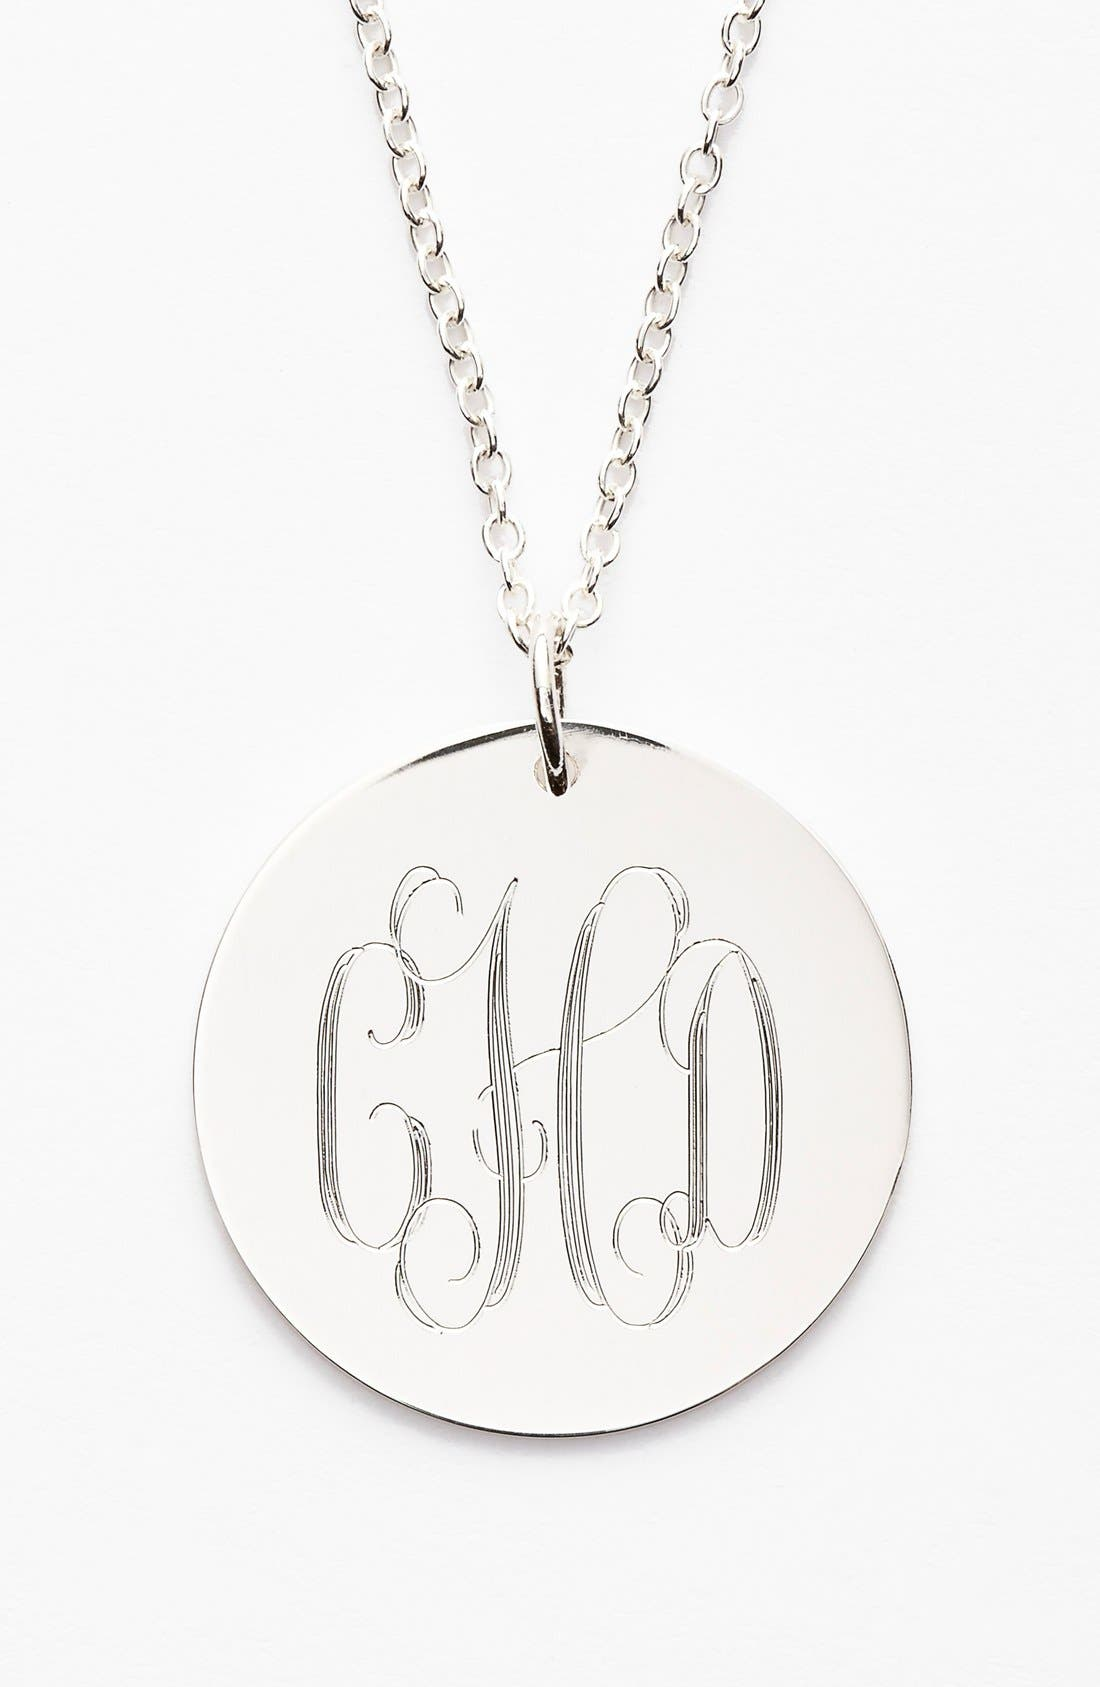 Personalize your own classic or modern monogrammed necklace with this dainty double-sided disc pendant. Hand-cut and hand-polished, this customized treasure is sure to be a delightful gift. Style Name: Jane Basch Designs Personalized Reversible Pendant Necklace. Style Number: 1015567. Available in stores.